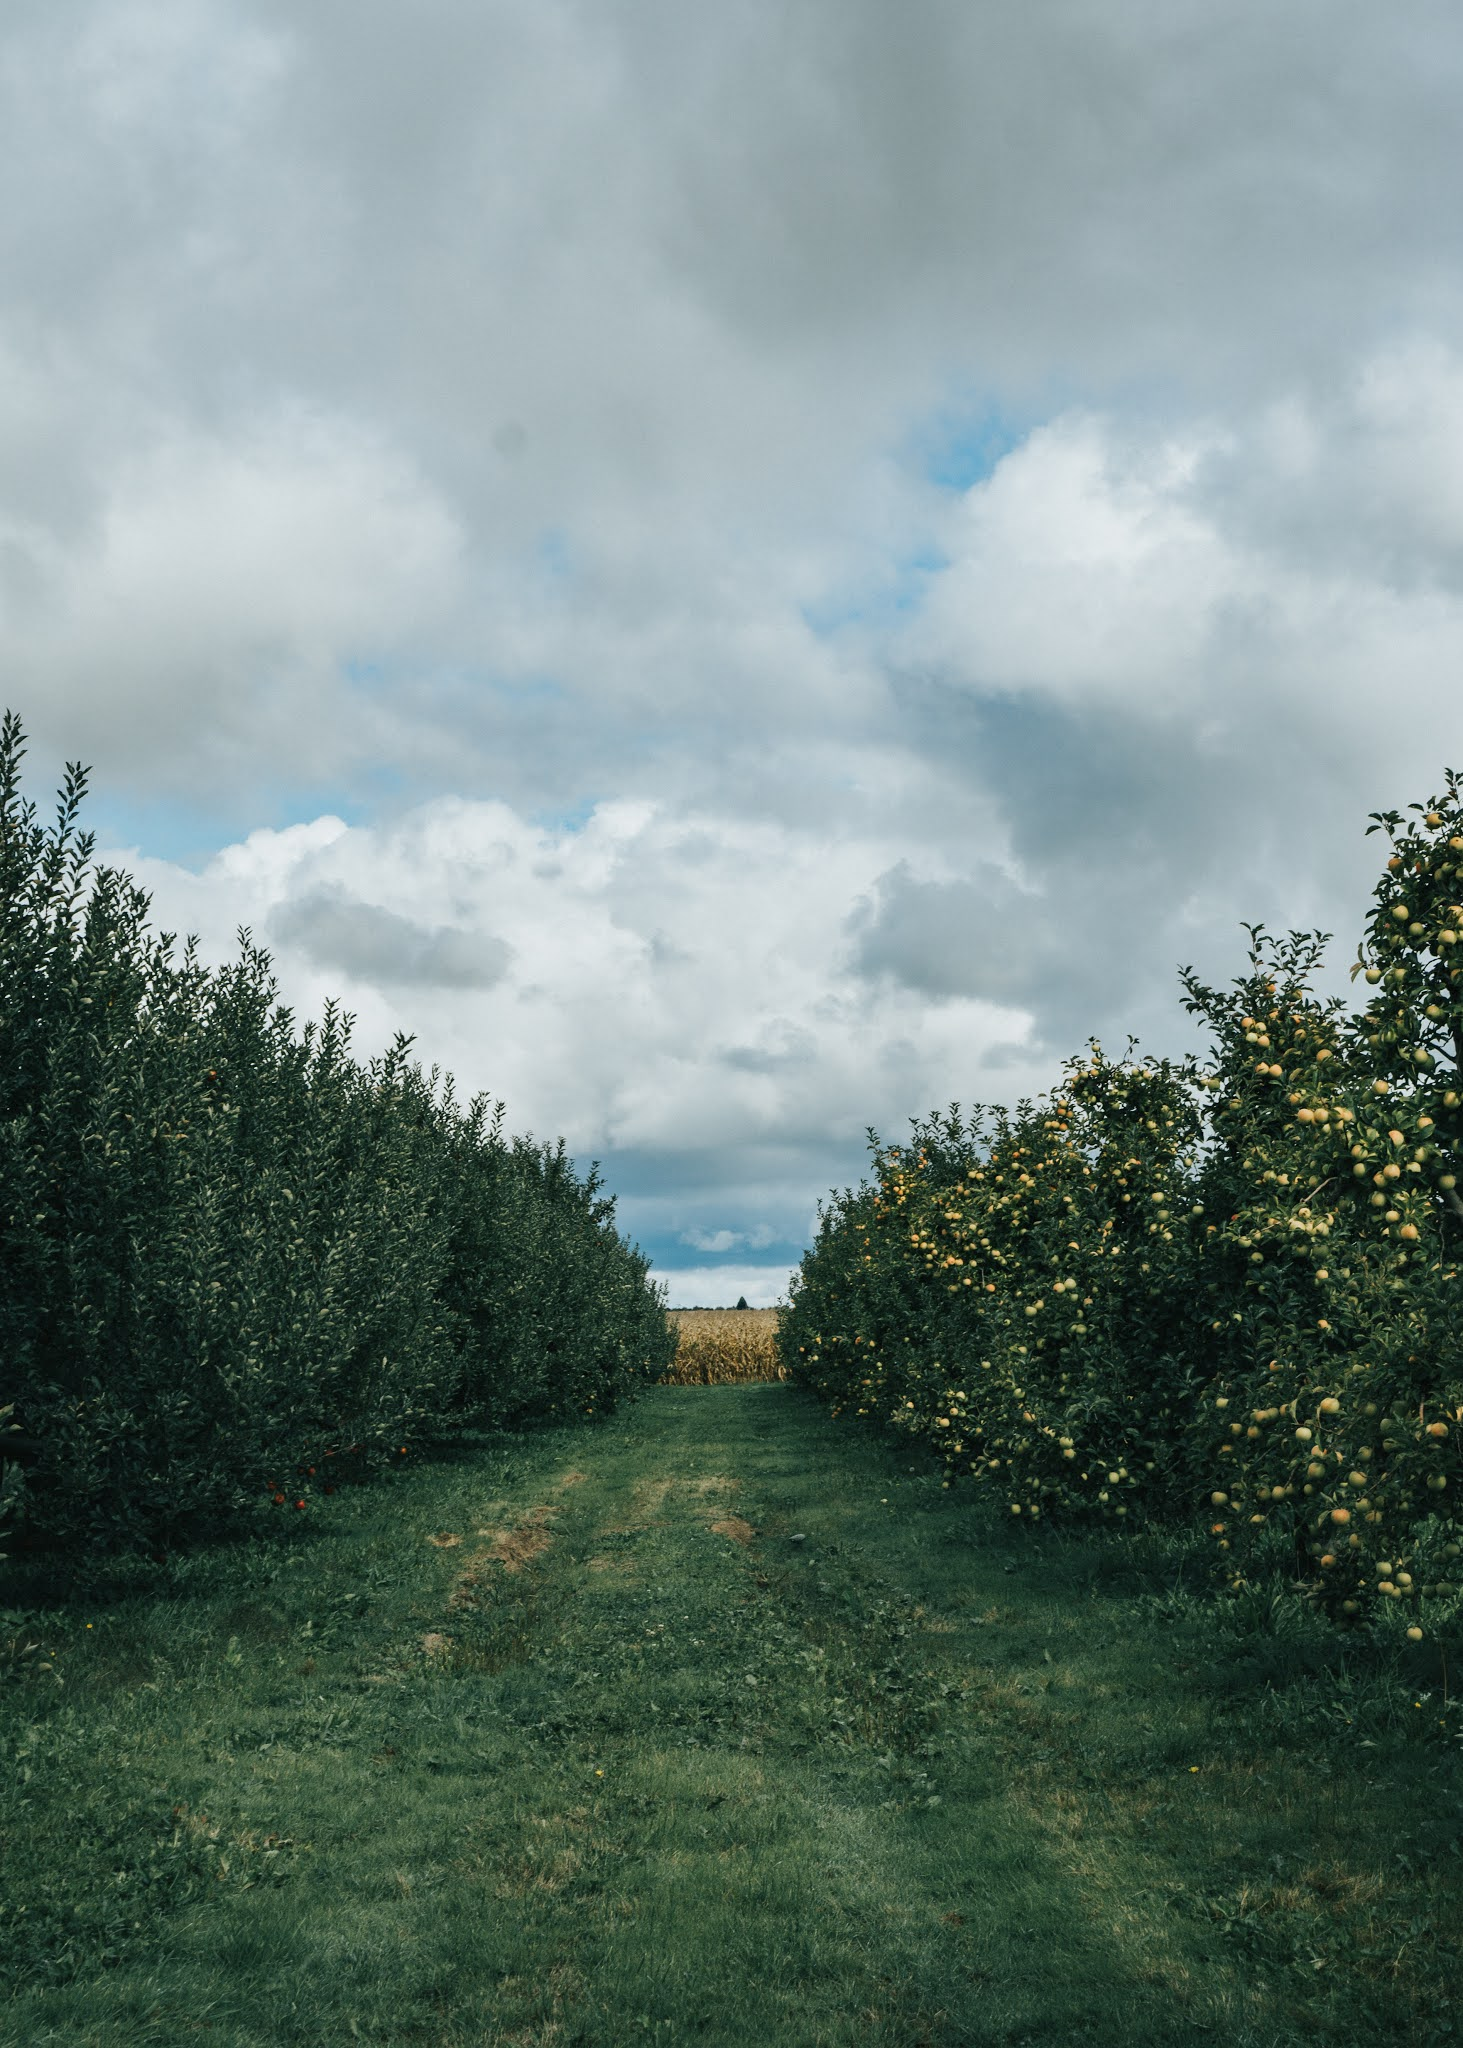 My favorite fall activity is apple picking